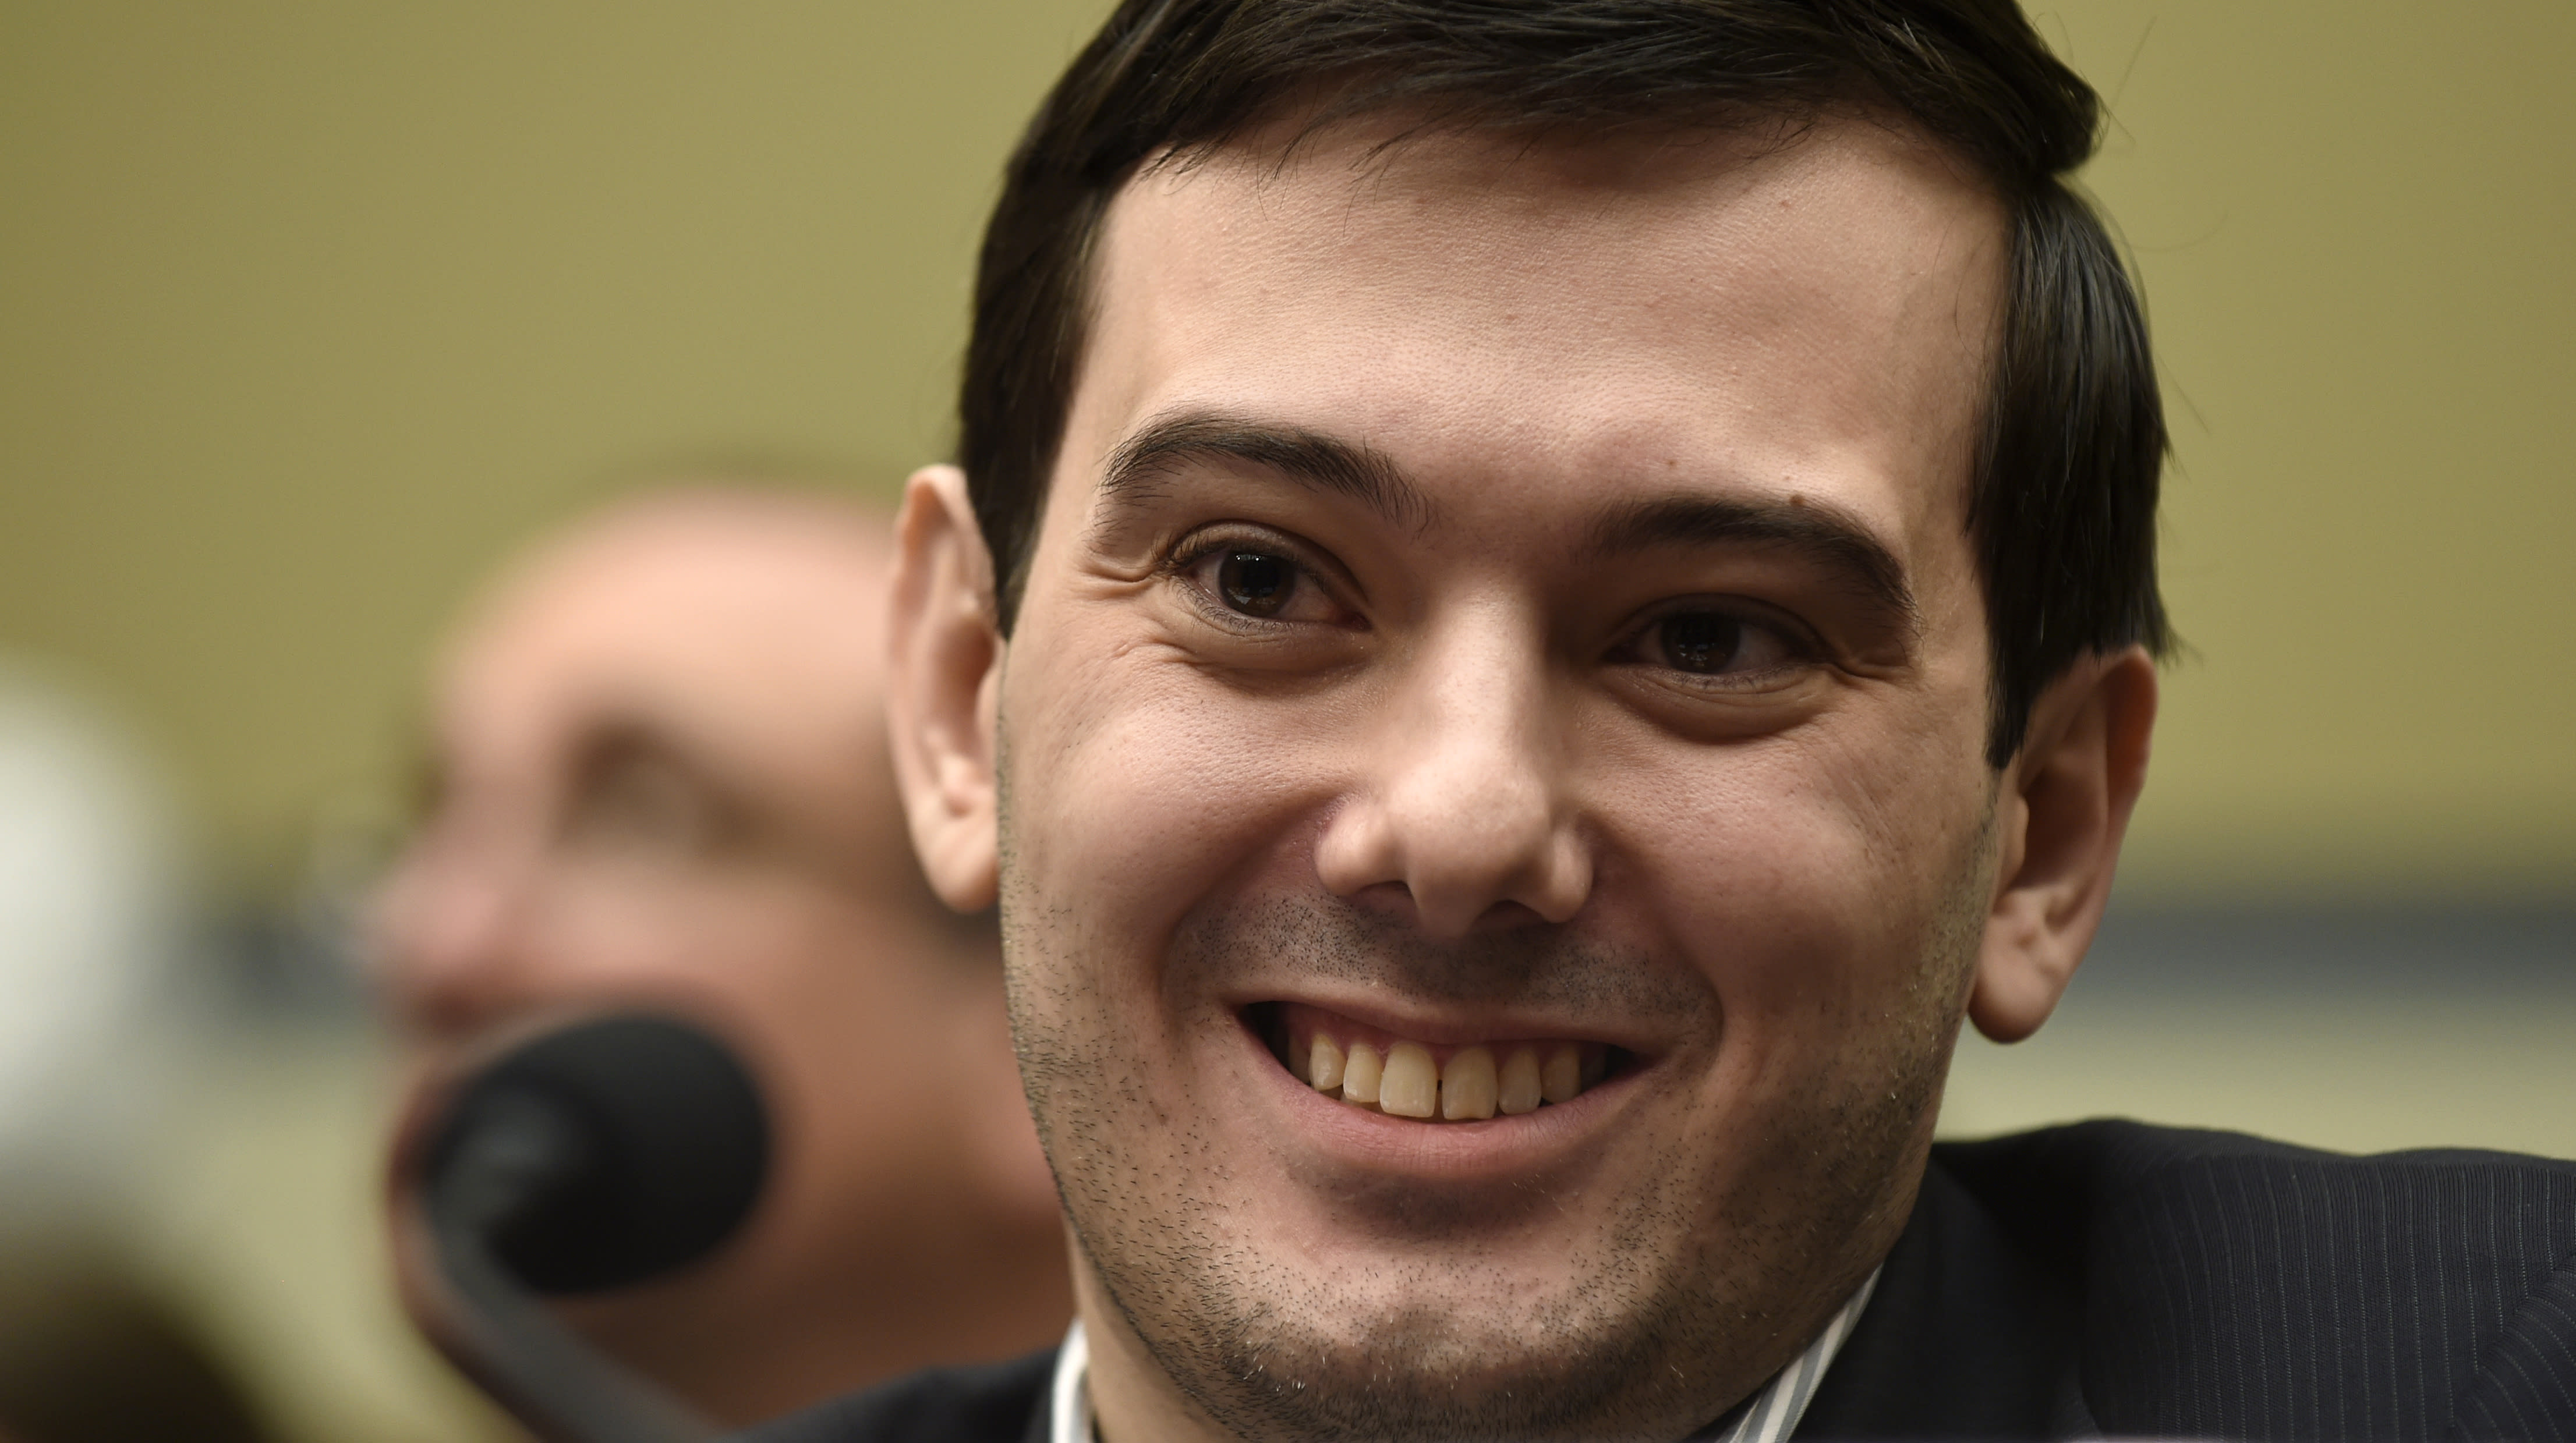 Drug exec takes the Fifth on Capitol Hill, angers lawmakers